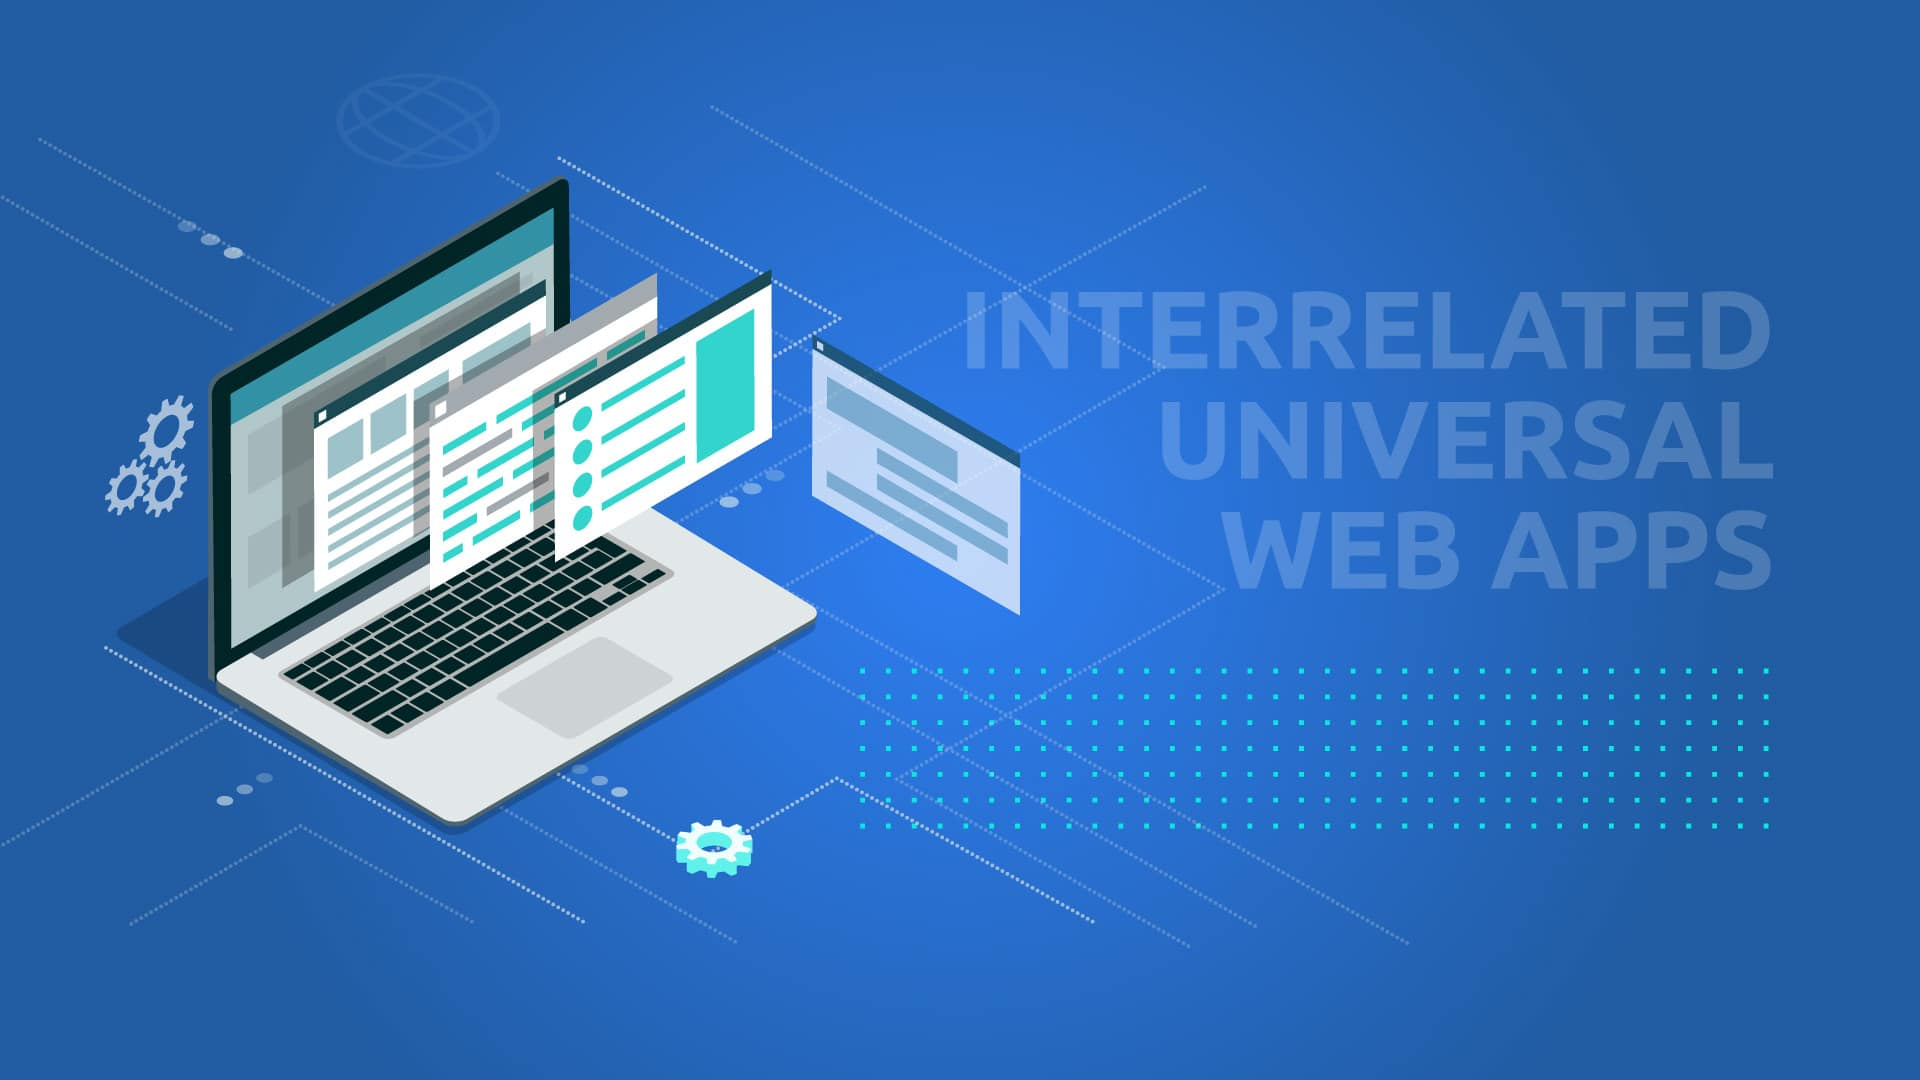 A Practical Technology Stack for Developing Multiple Interrelated Universal Web Apps - Cloud Design System for App Code Organization | MobiLab Blog